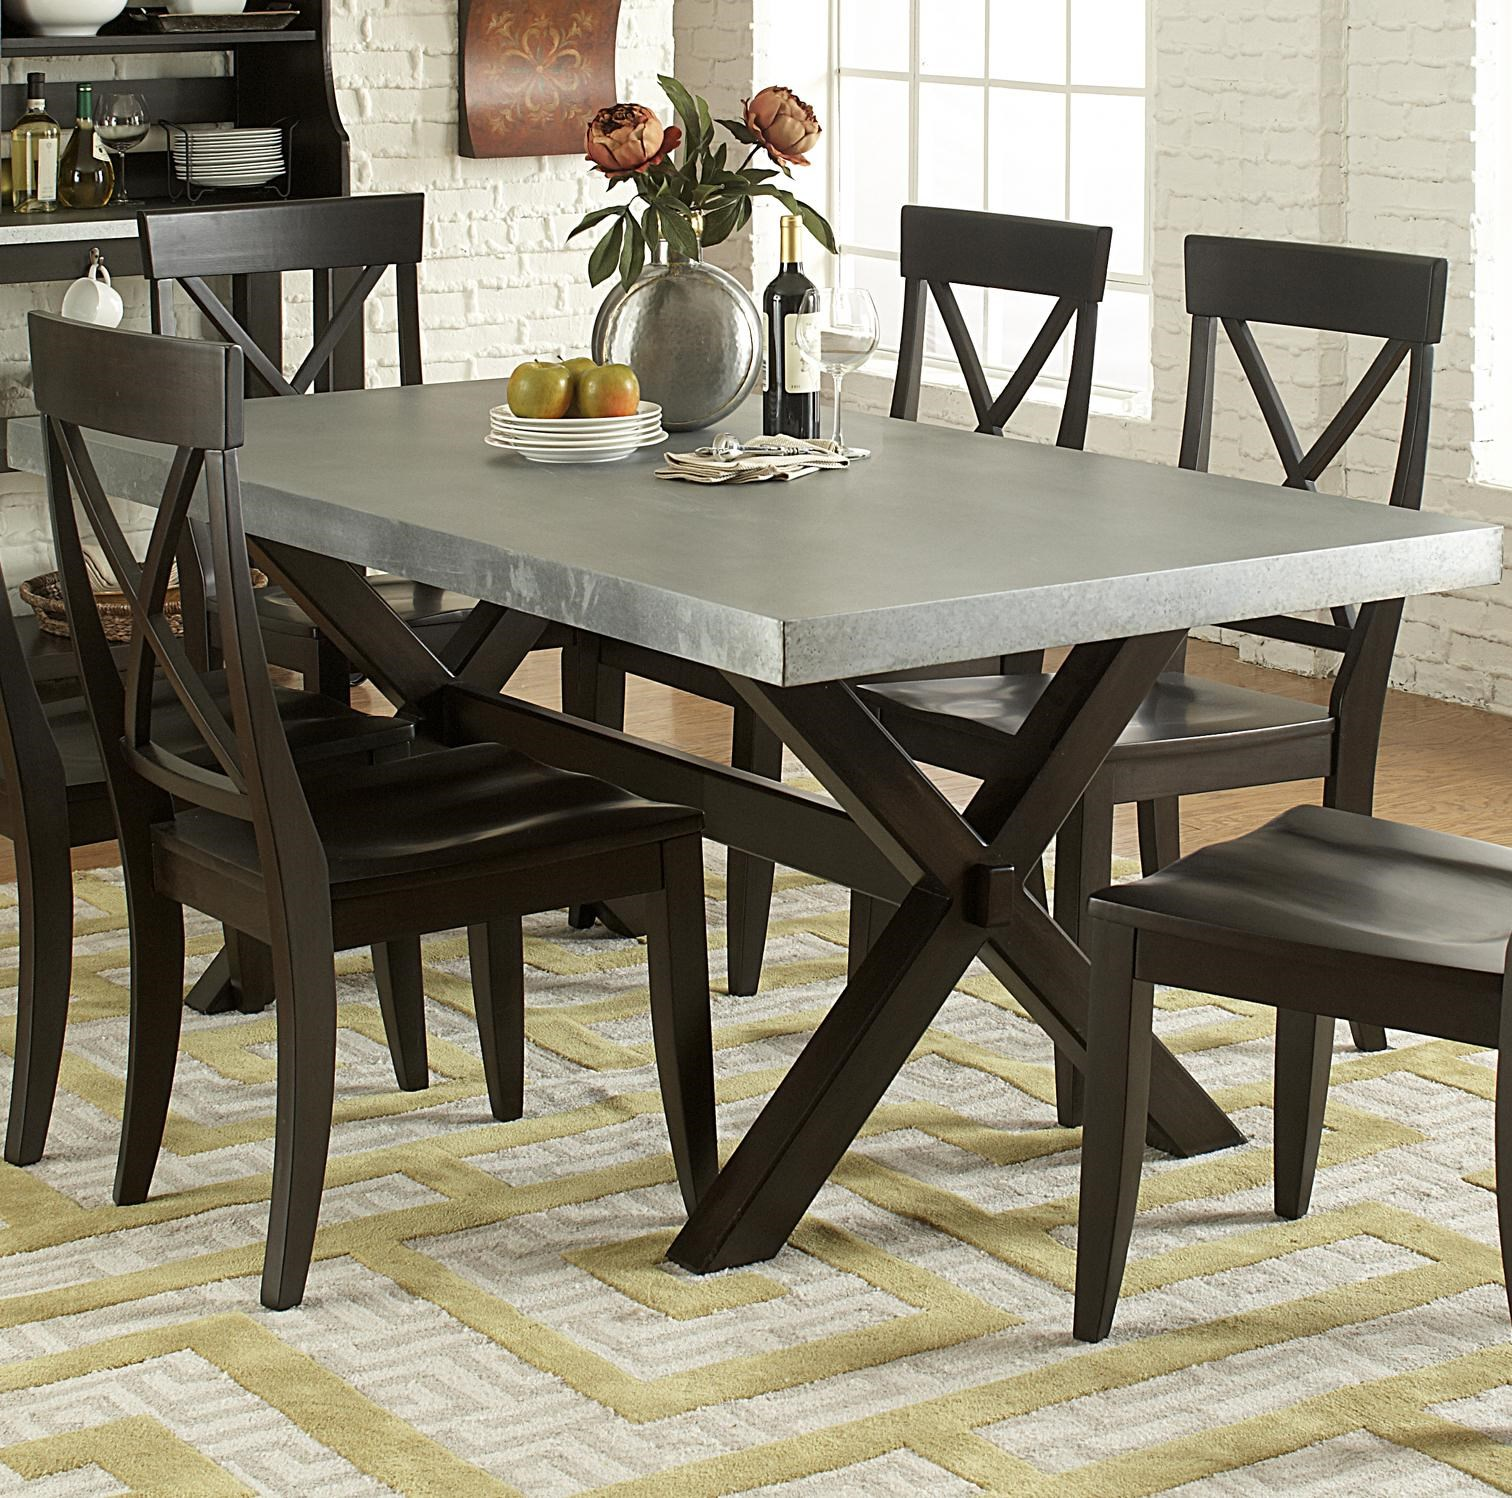 Keaton II Rectangle Trestle Dining Table With Metal Top By Vendor 5349